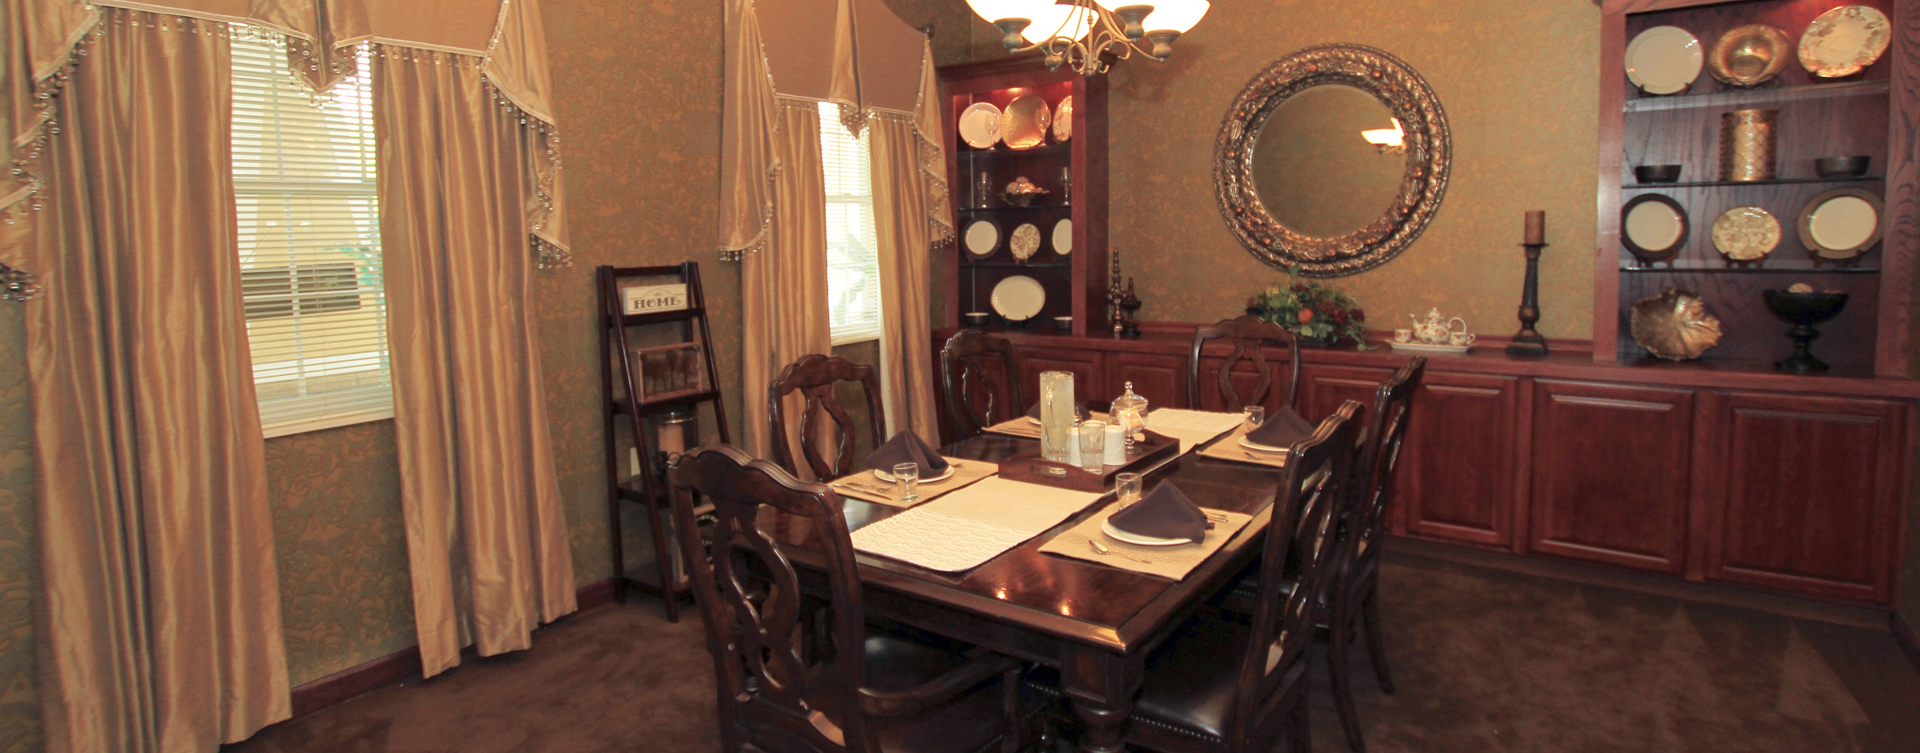 Food is best when shared with family and friends in the private dining room at Bickford of Saginaw Township